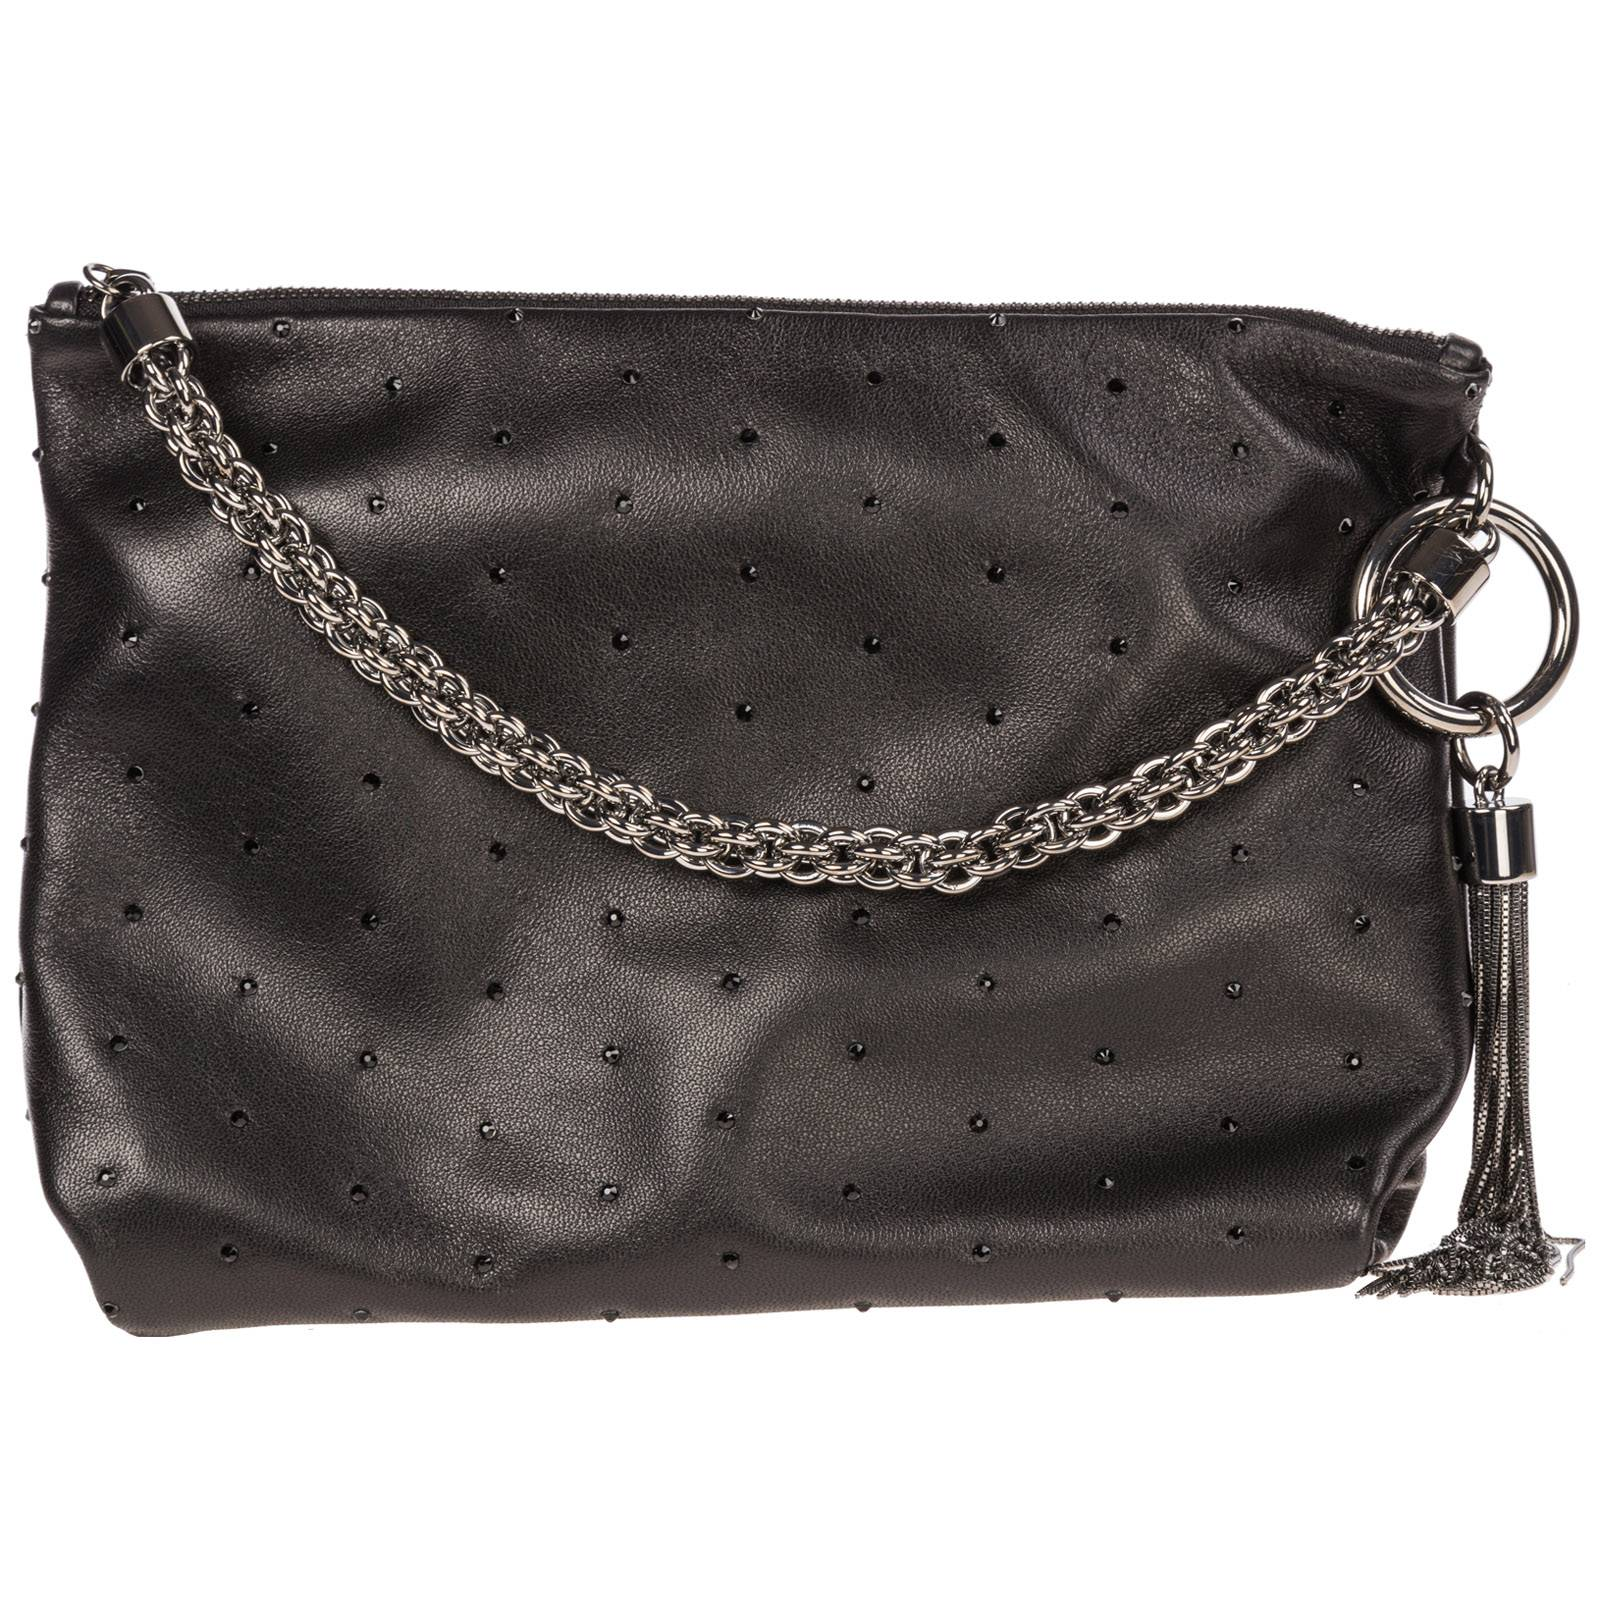 Jimmy Choo Women's leather clutch handbag bag purse callie  - Black